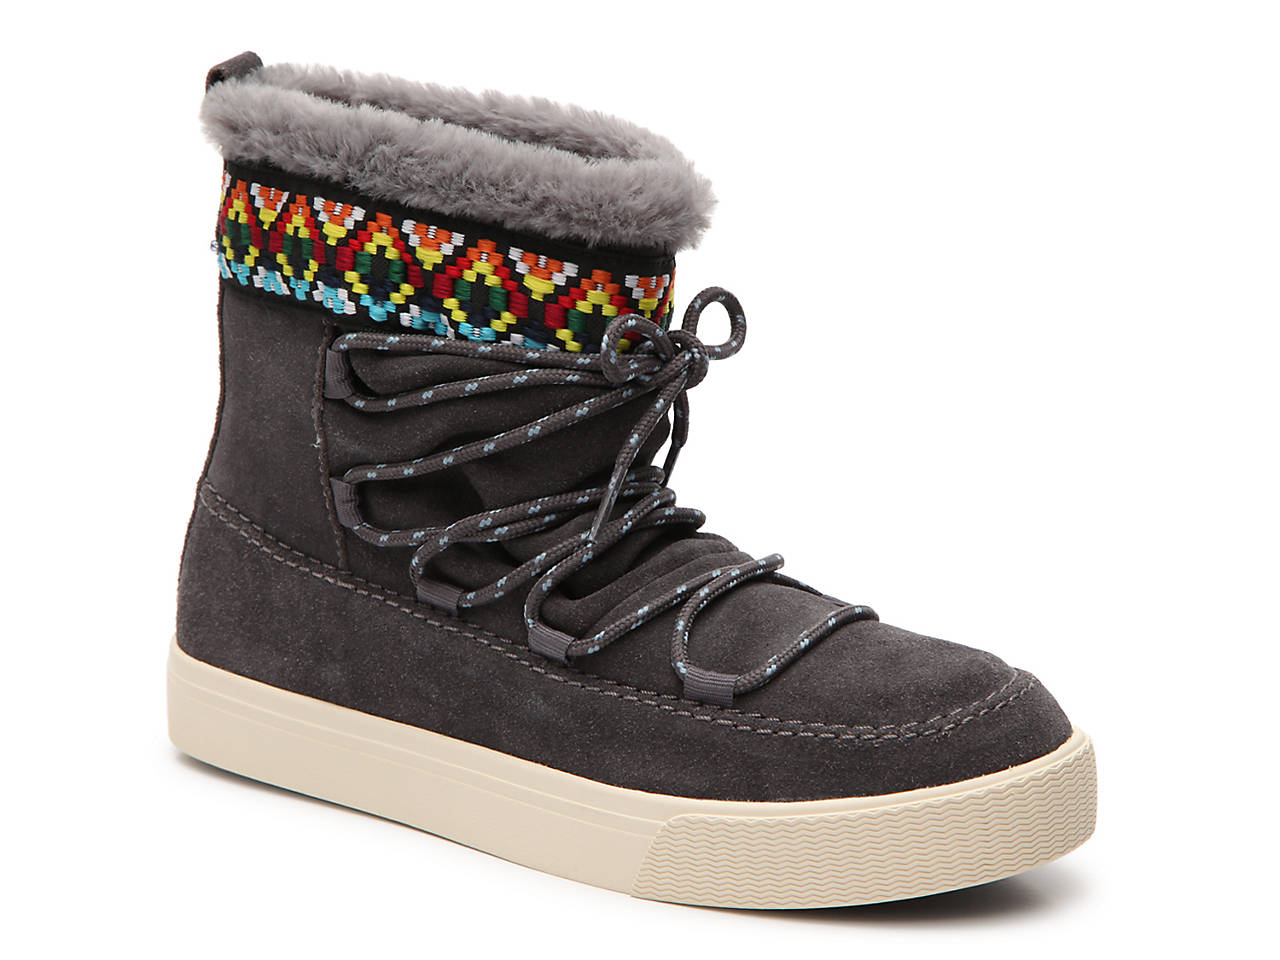 94a7492bf90 TOMS Alpine Bootie Women s Shoes